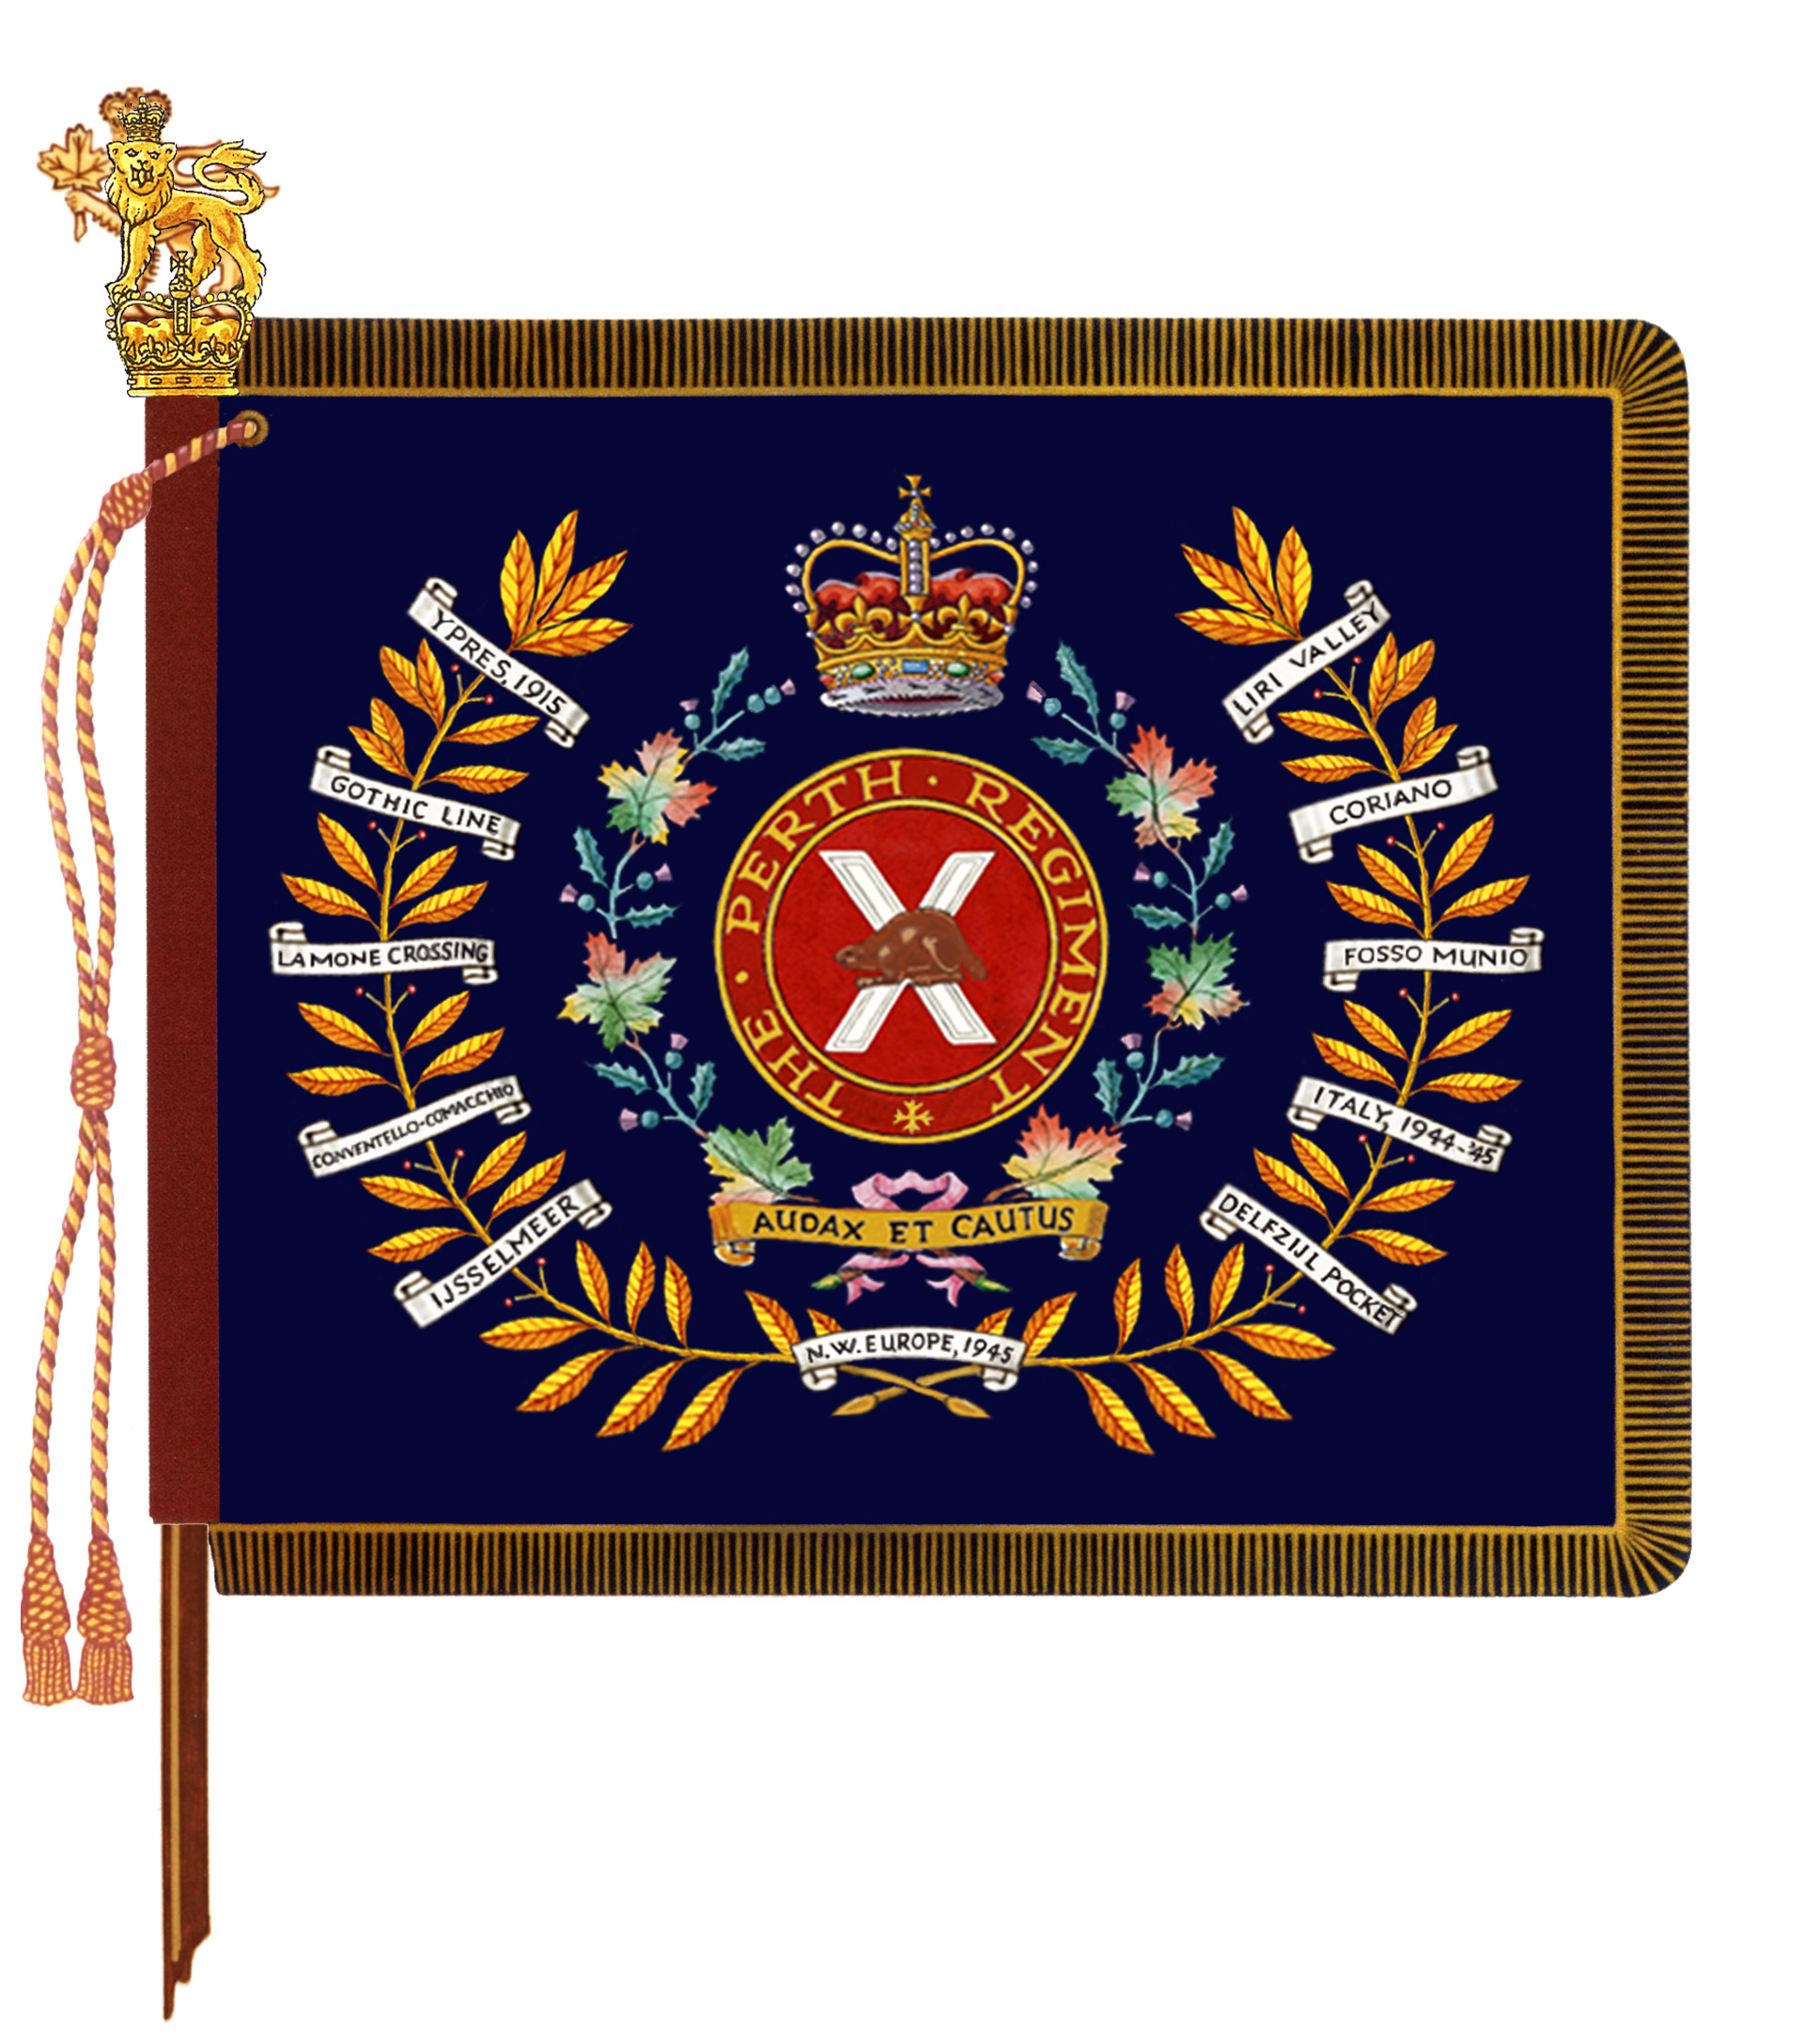 The Perth Regiment